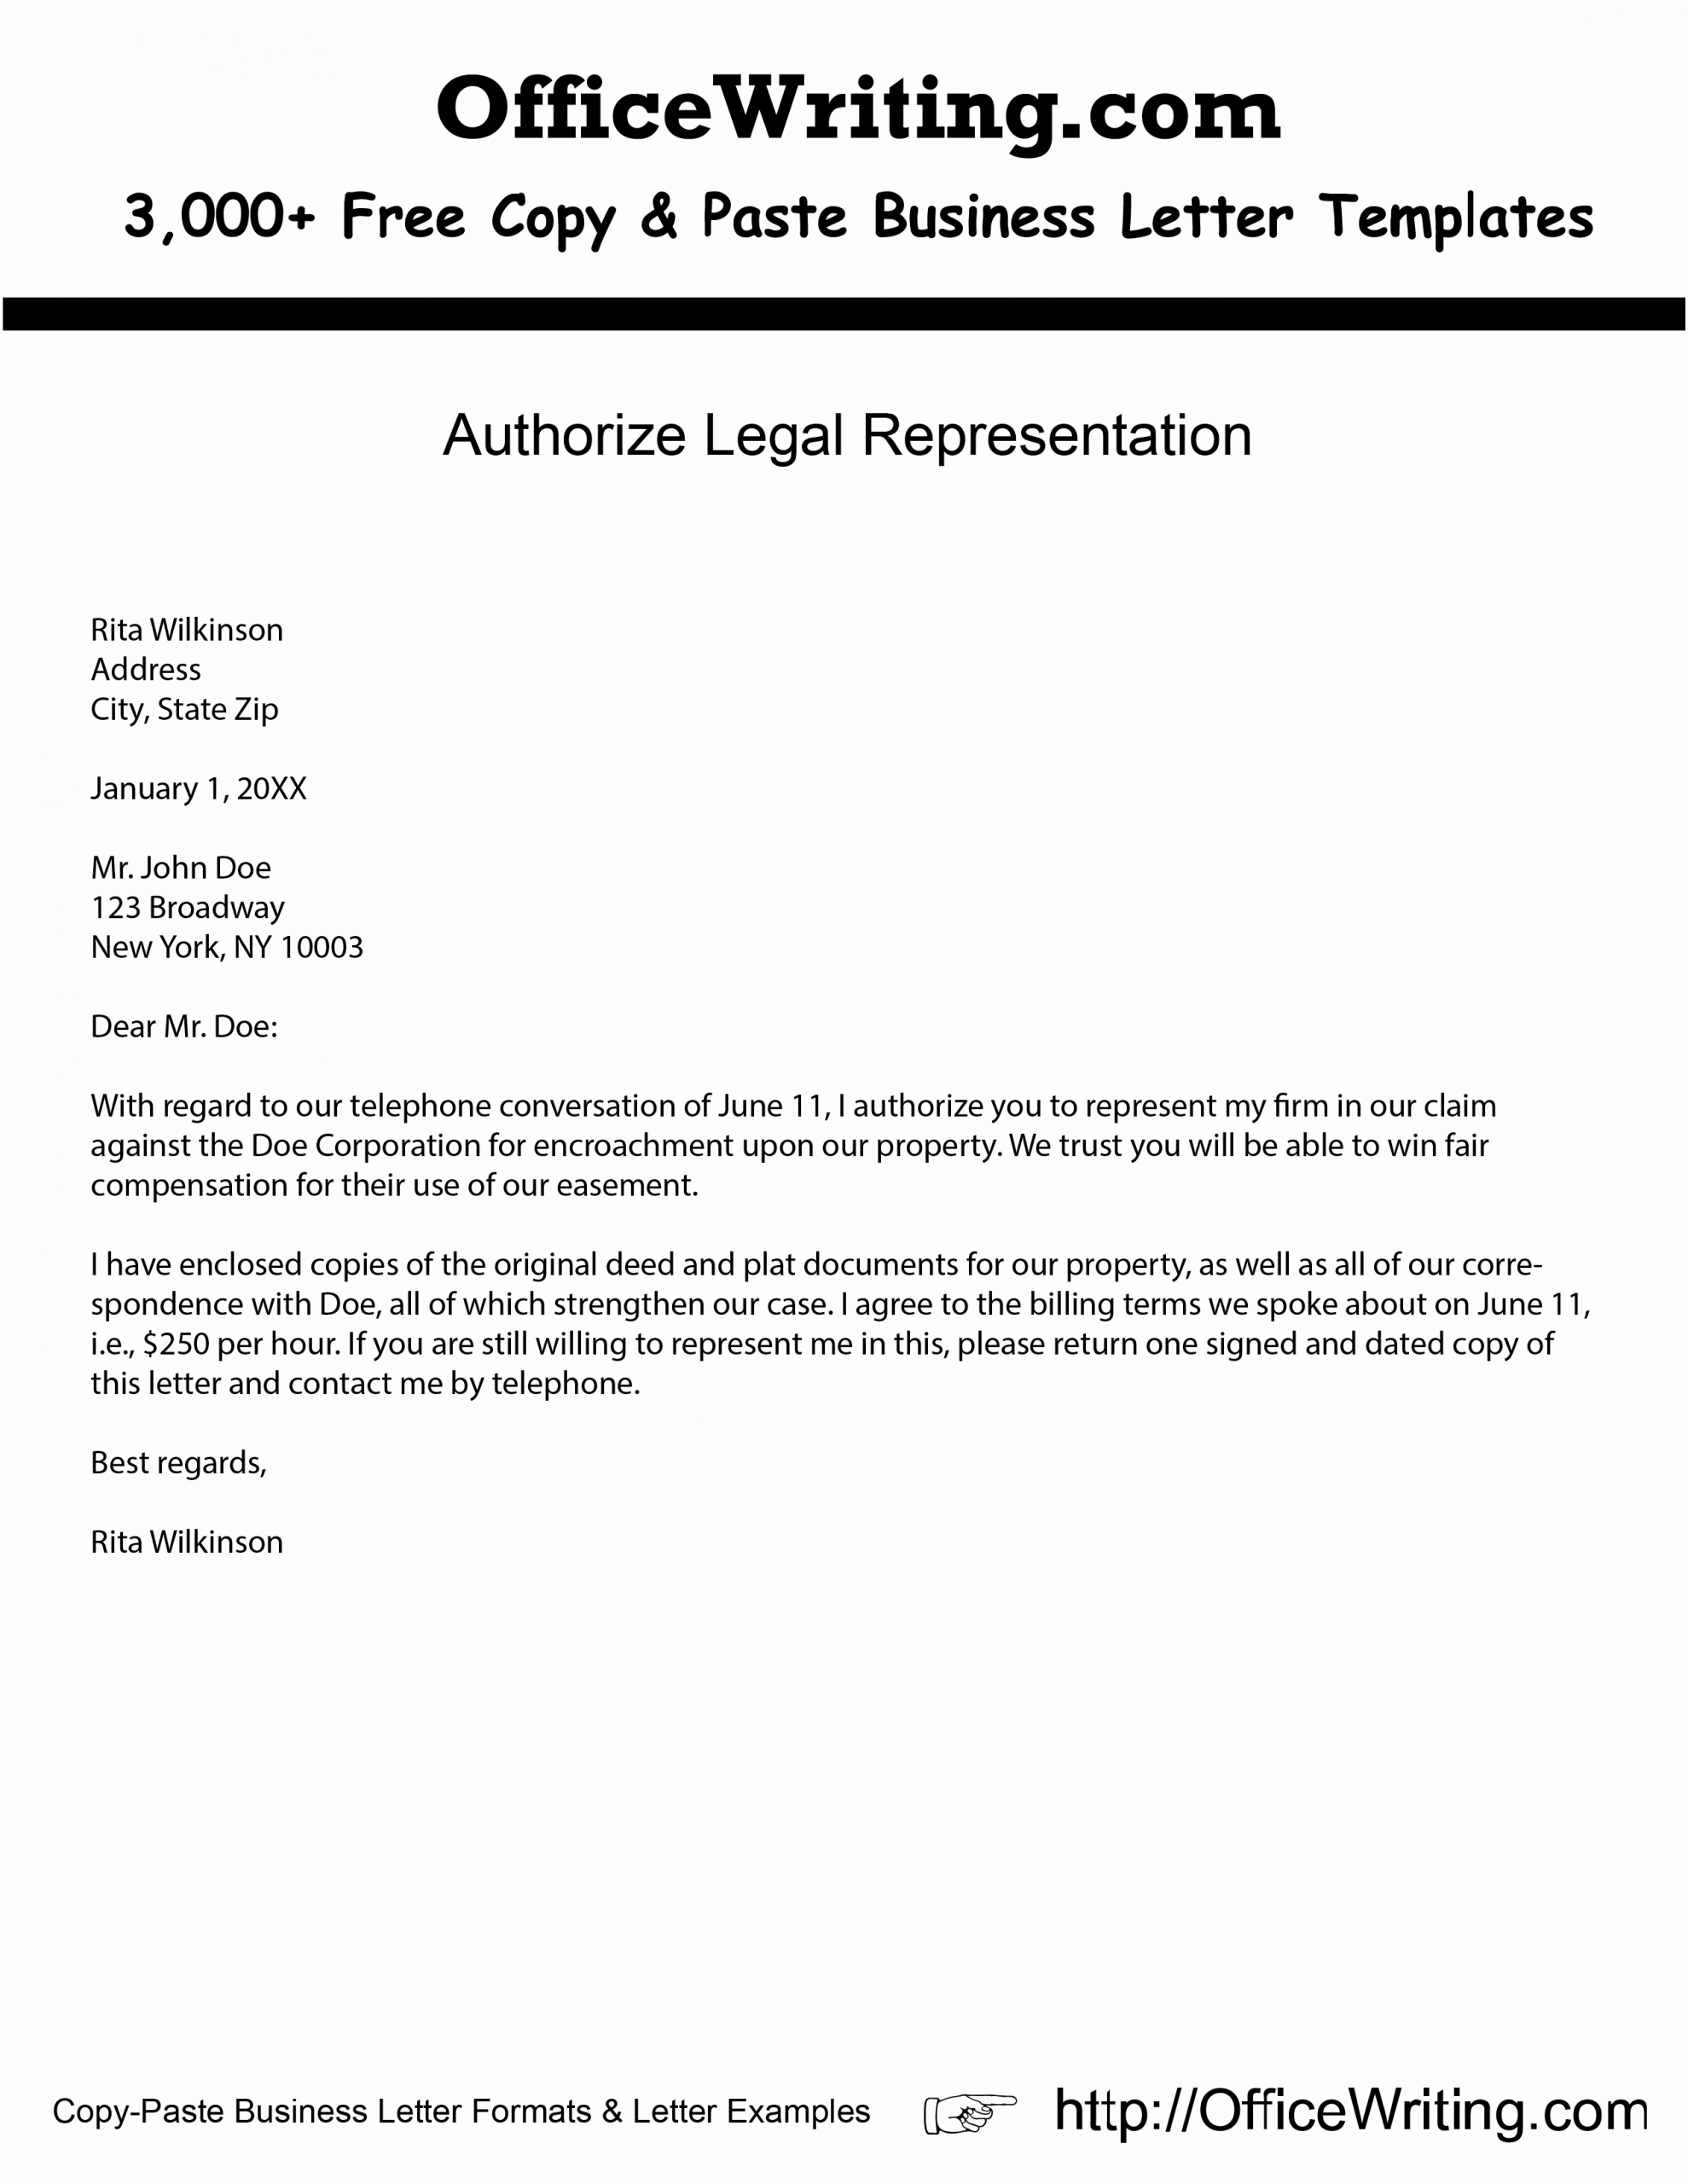 Letter Of Representation Sample Luxury Authorize Legal Representation Download Free Business